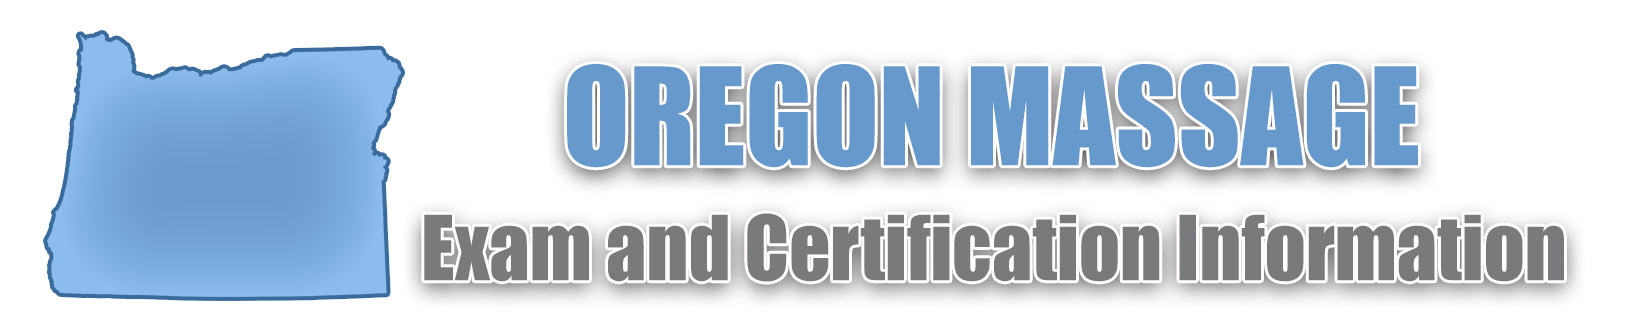 Oregon MBLEX Massage Exam and Certification Information